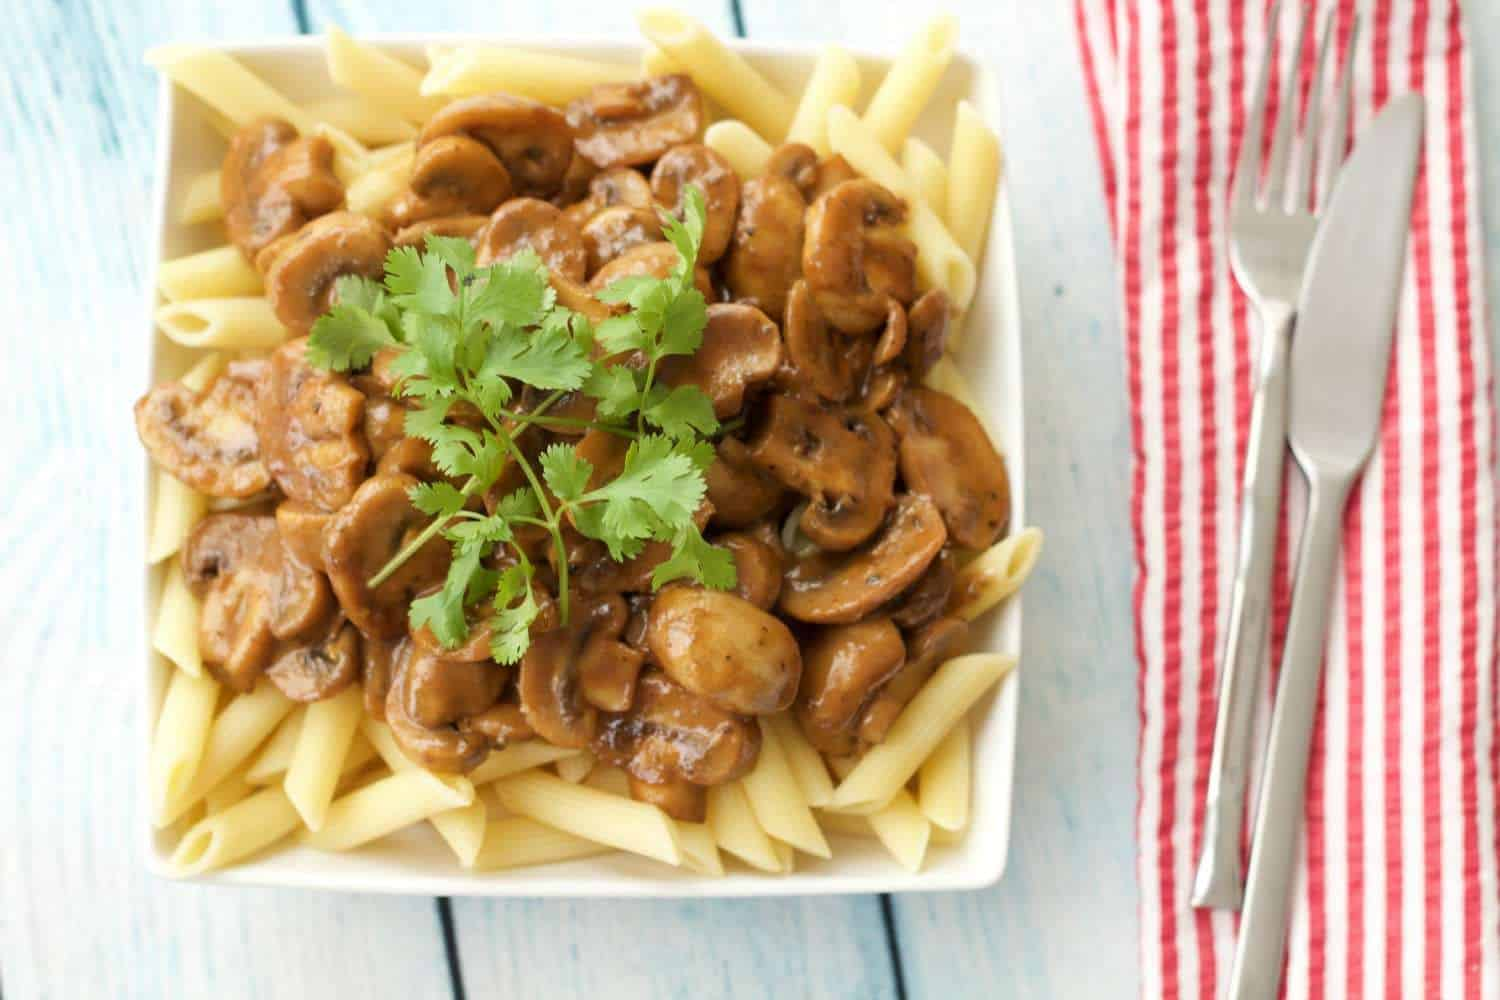 Tahini mushroom sauce over penne in a square white bowl.